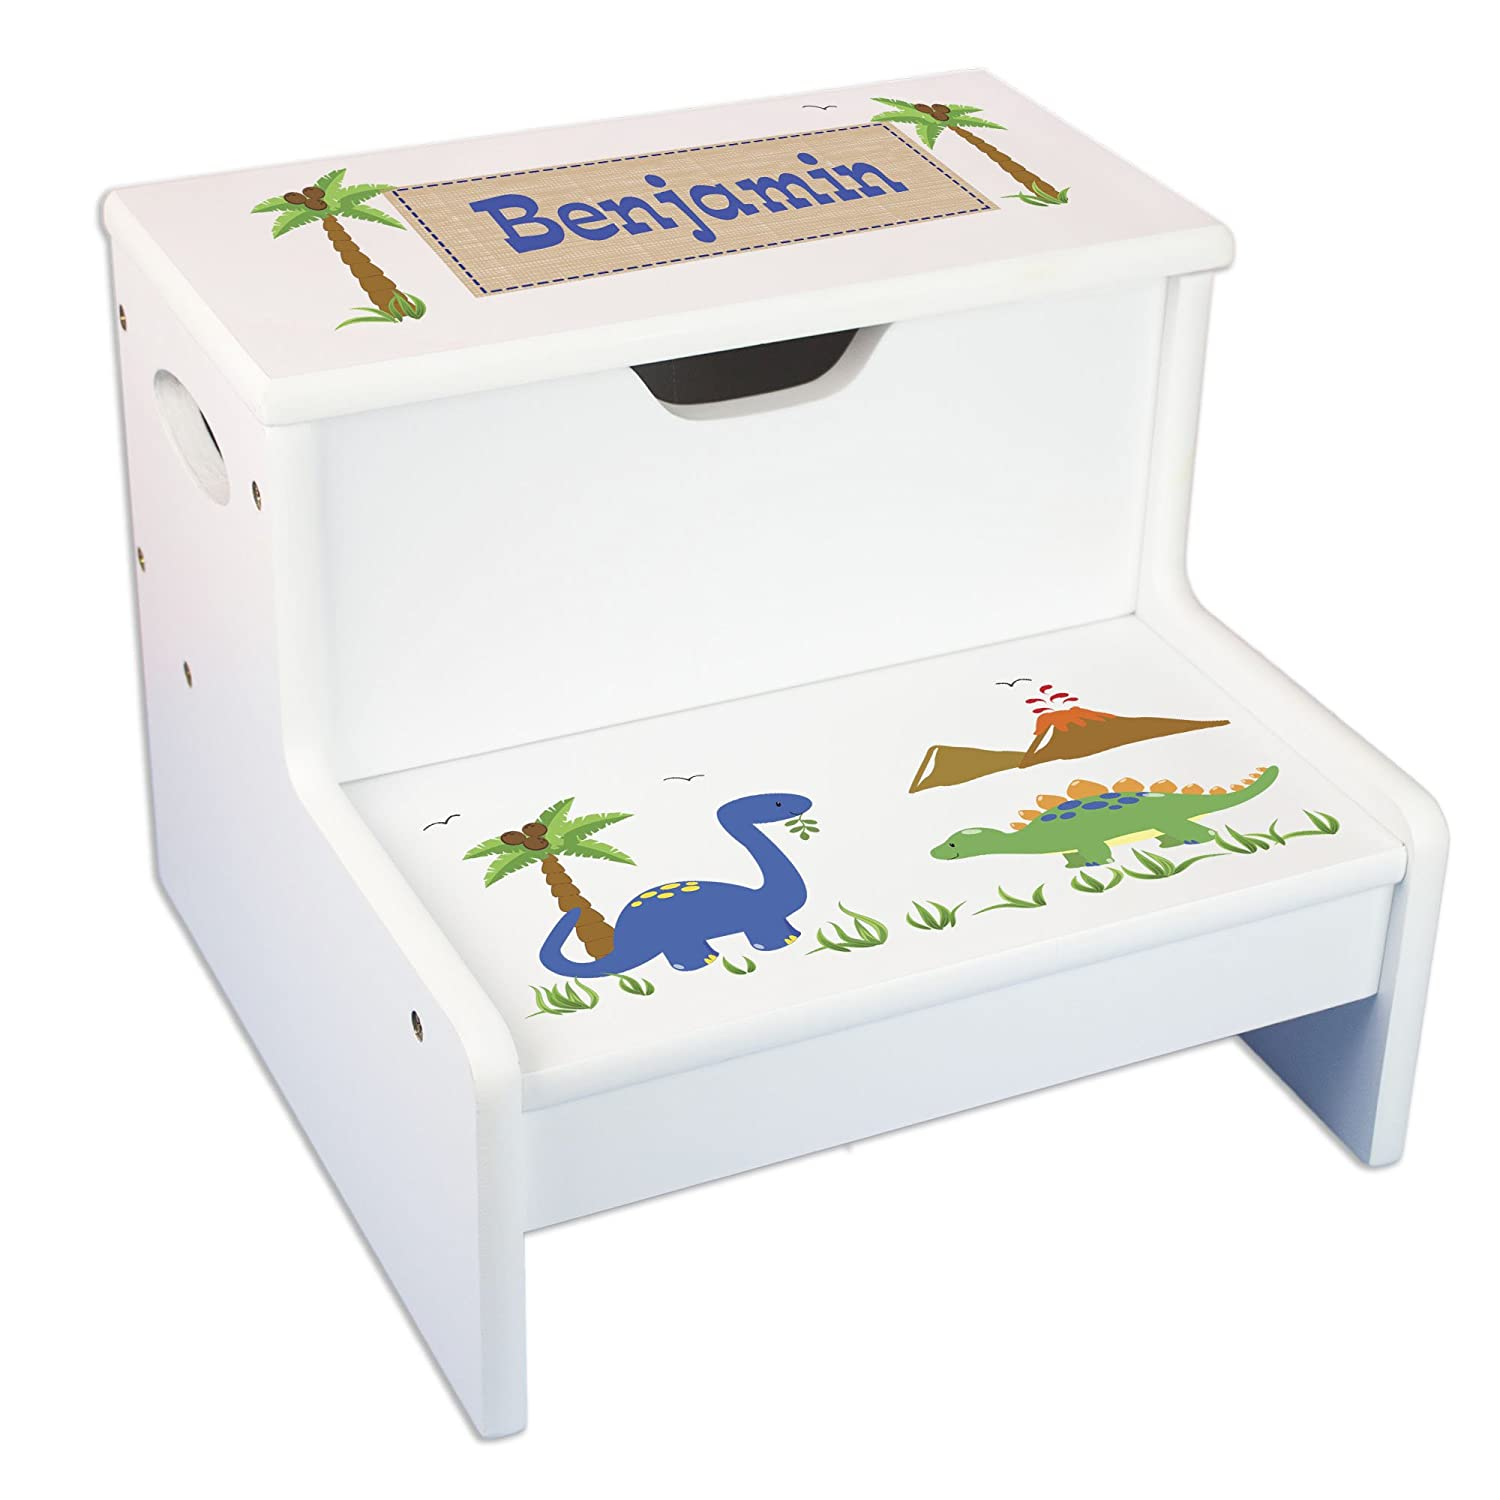 Outstanding Personalized Dinosaur Storage Step Stool Creativecarmelina Interior Chair Design Creativecarmelinacom